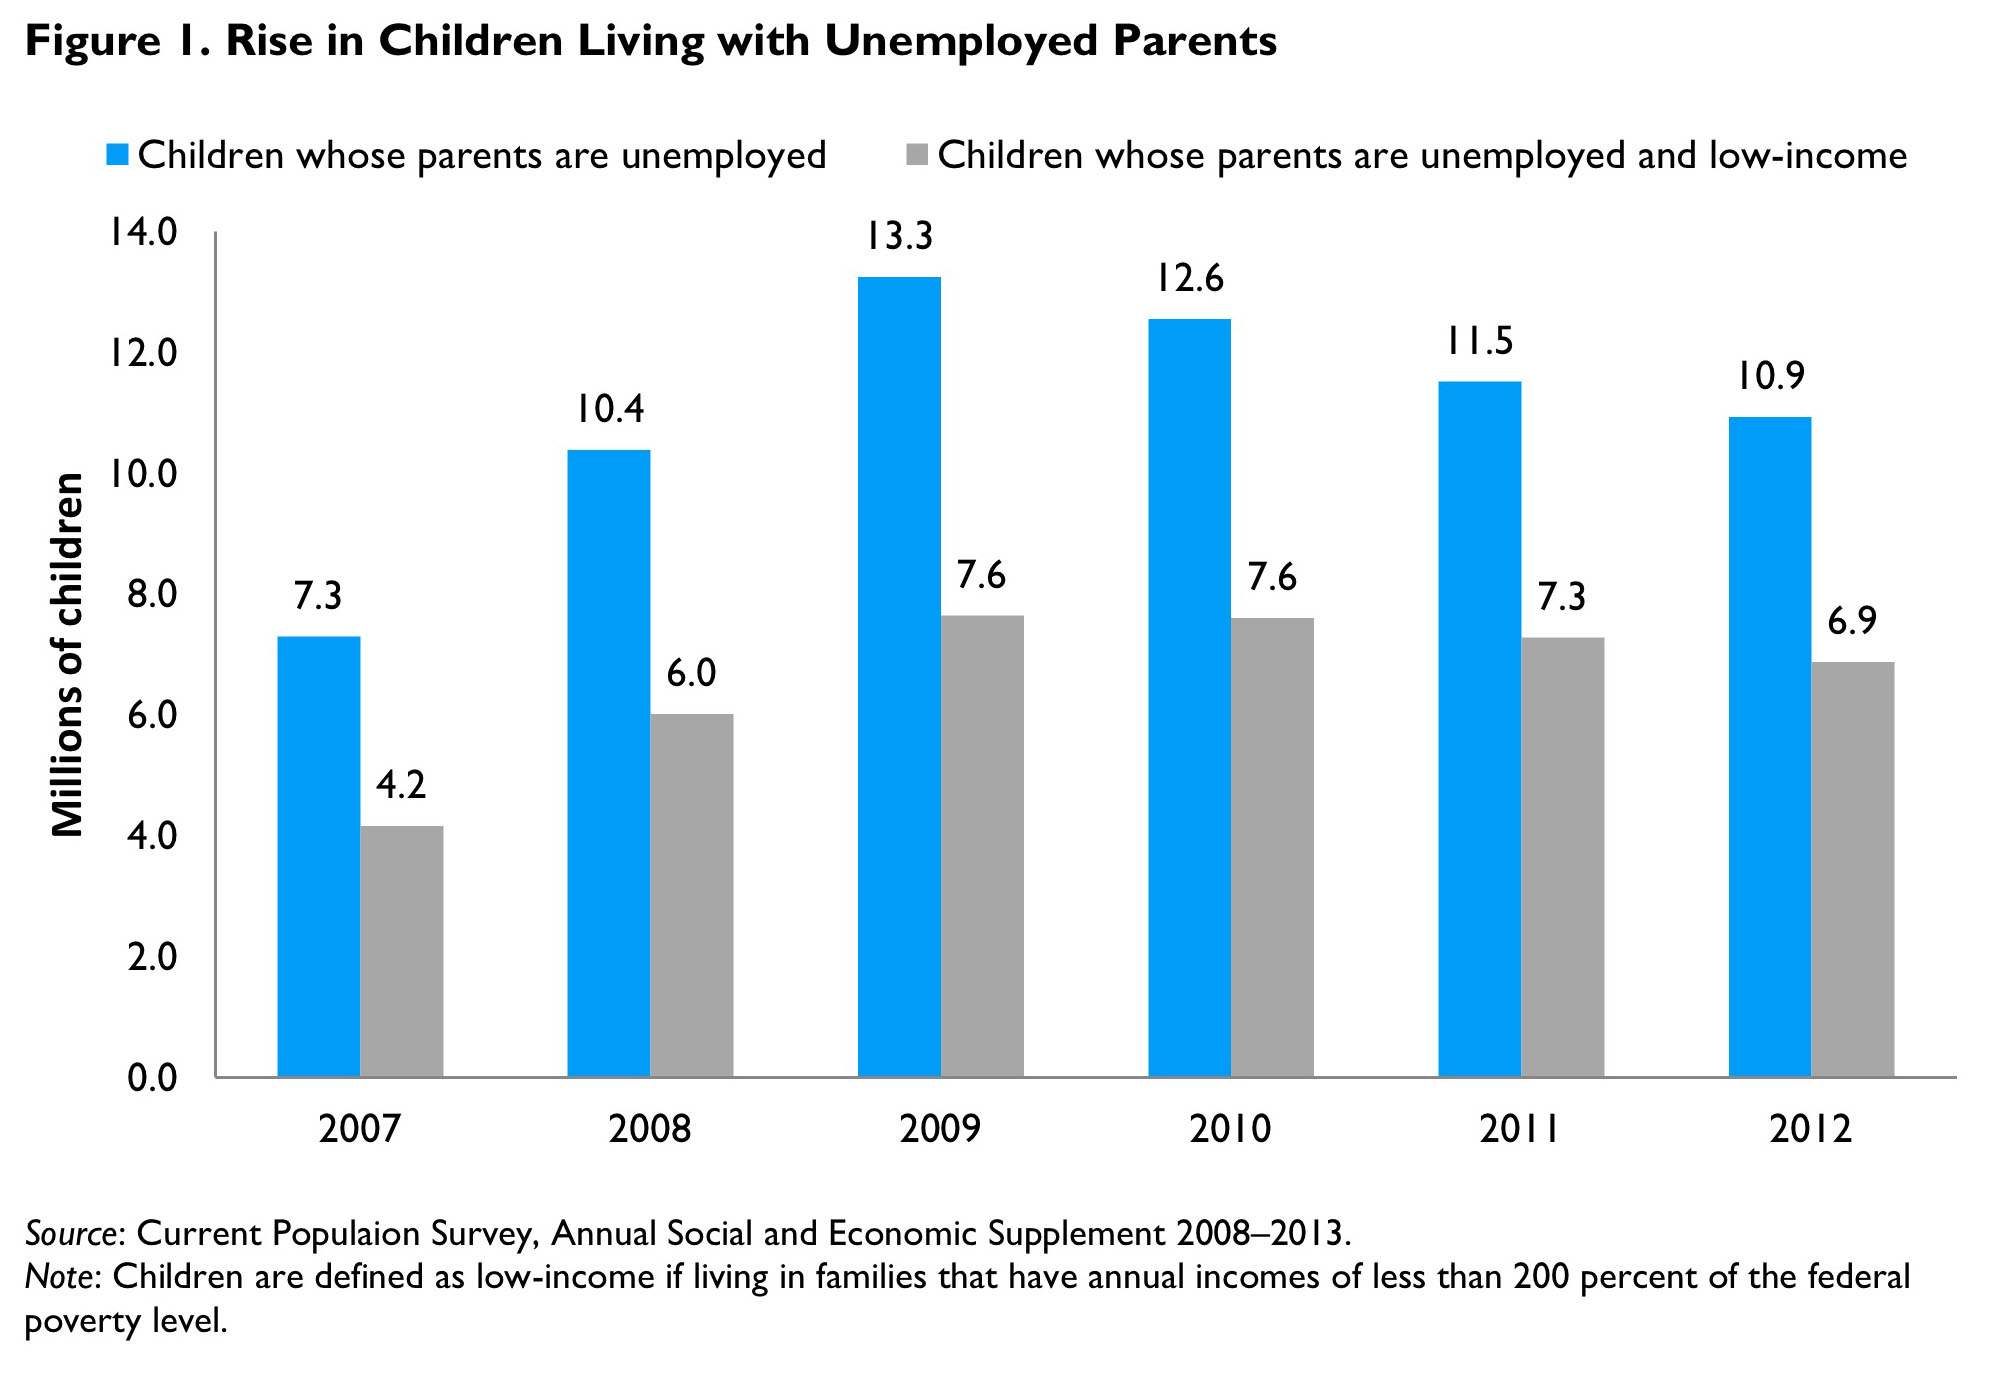 Figure 1. Rise in Children Living with Unemployed Parents